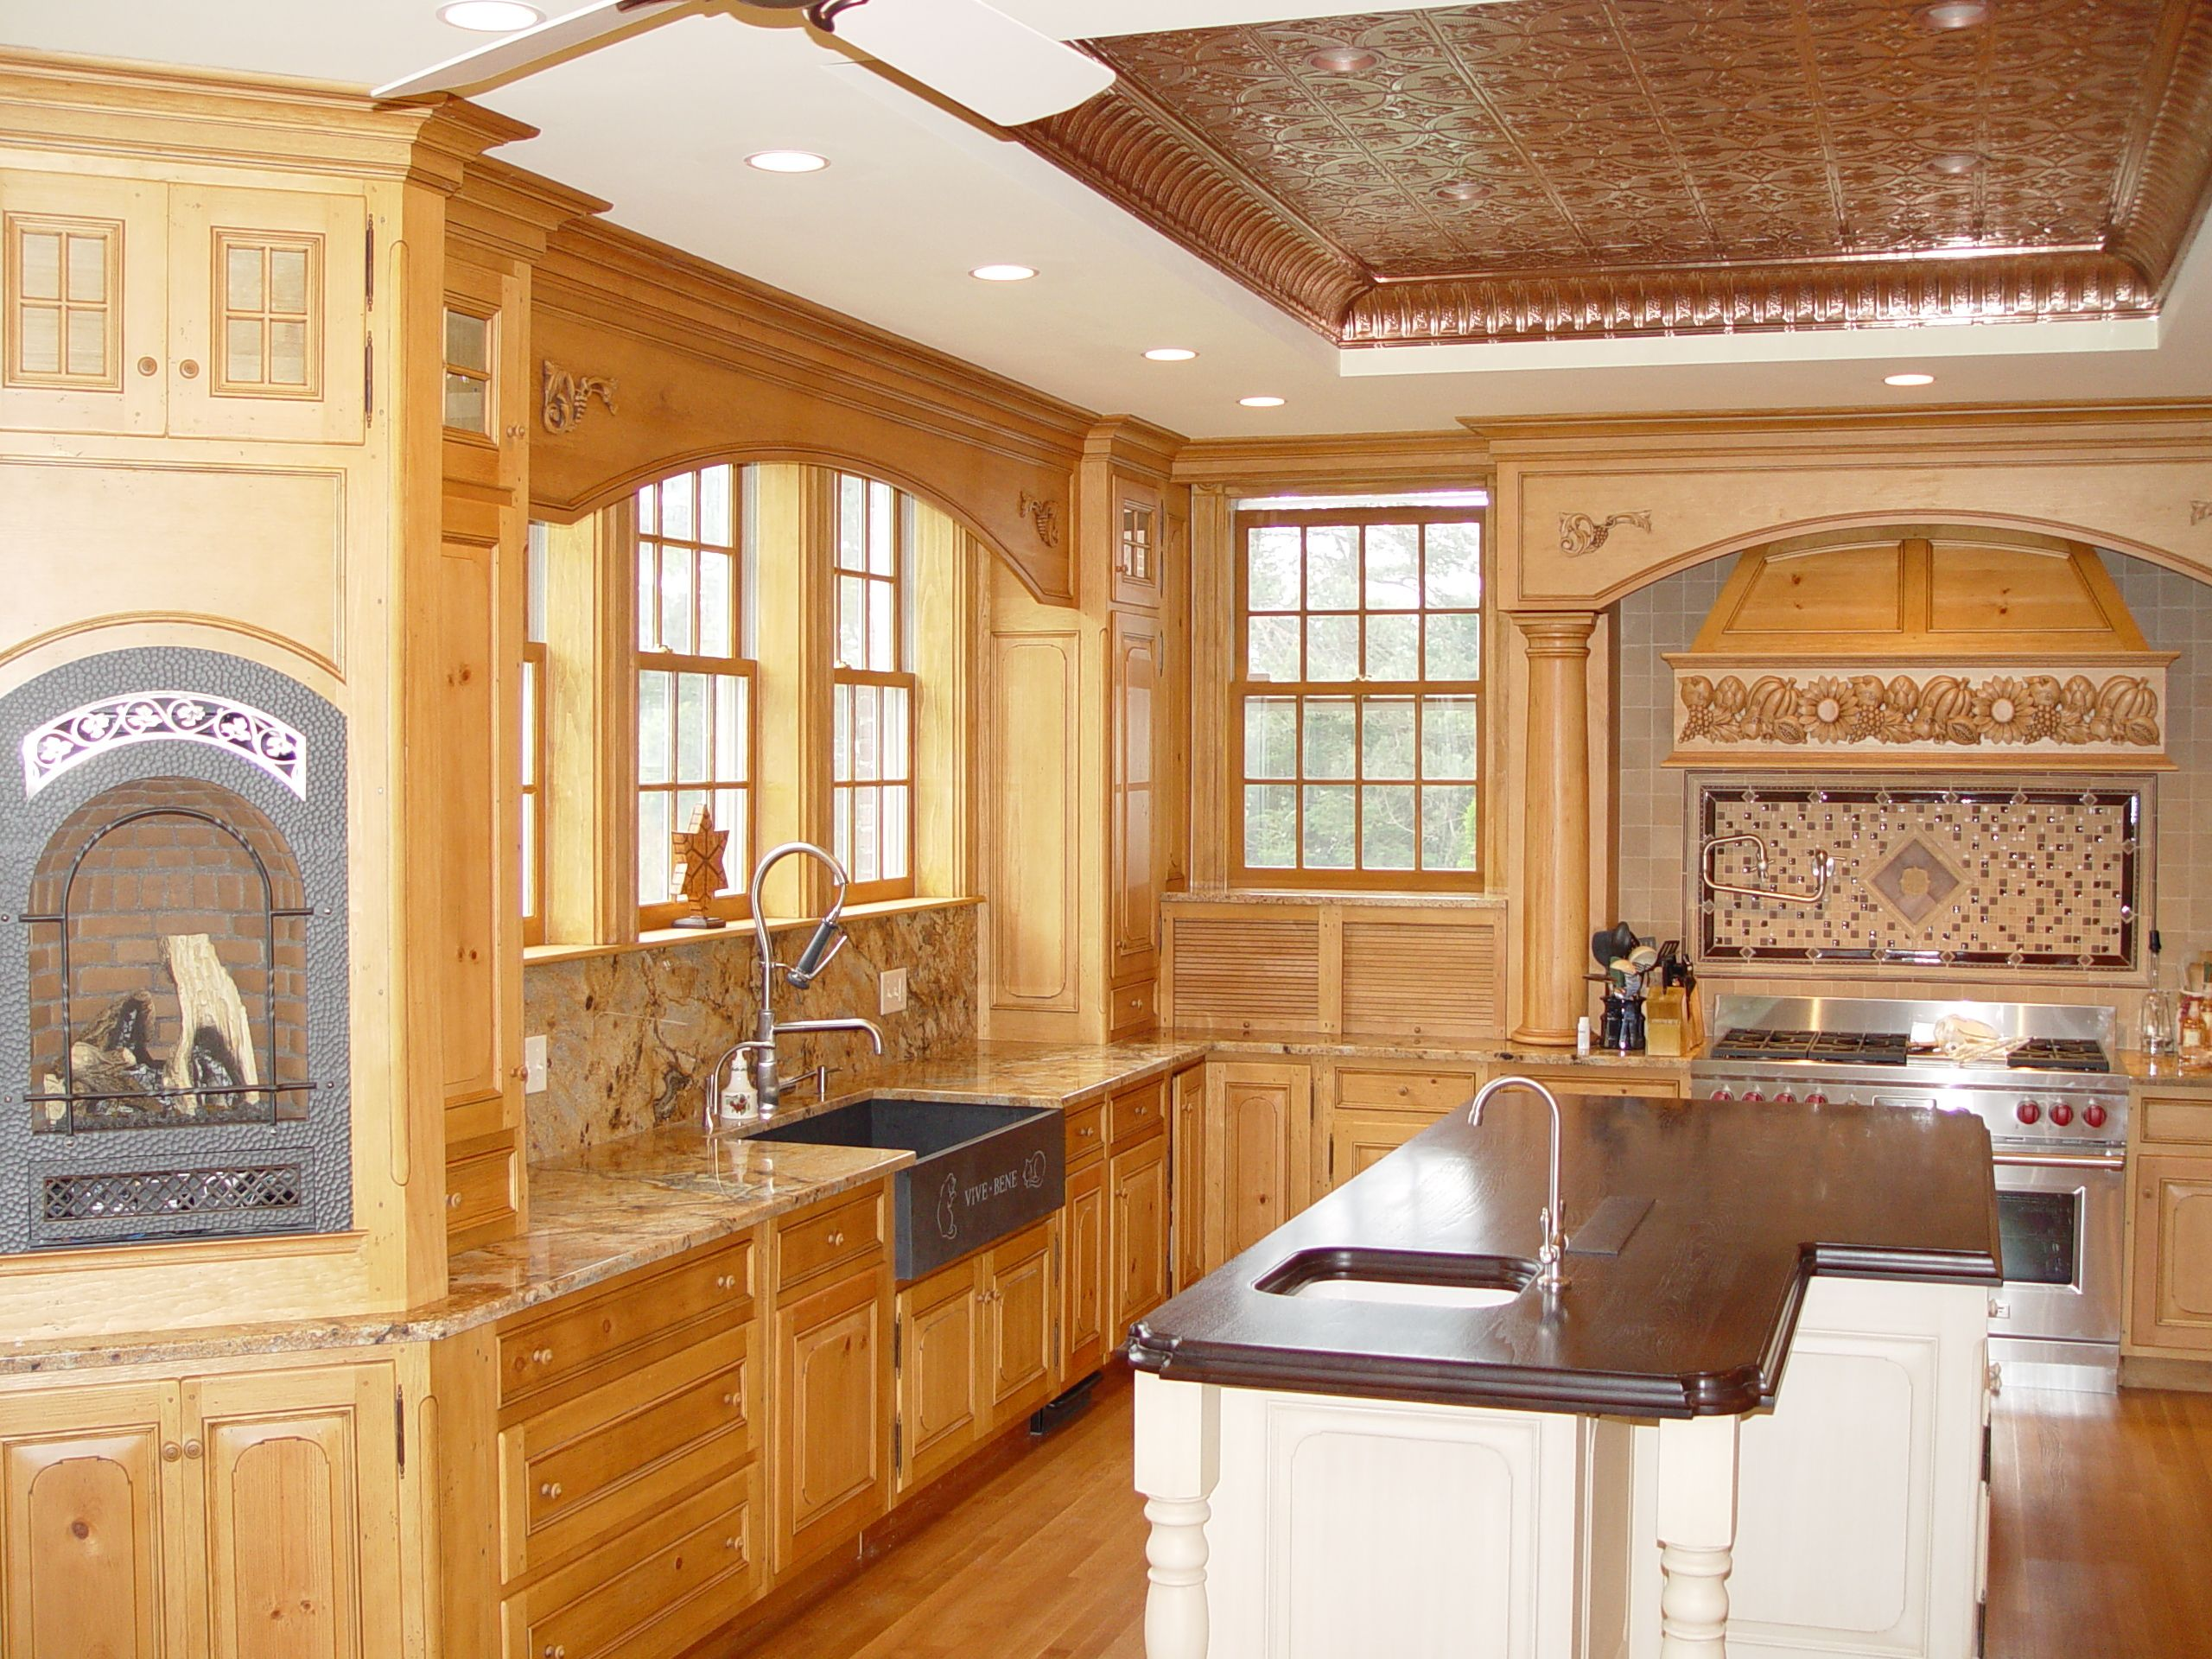 Best Way To Clean Wood Cabinets In Kitchen From Best Cleaner For Kitchen Cabinets Clean Kitchen Floor Wood Kitchen Cabinets Wooden Kitchen Cabinets